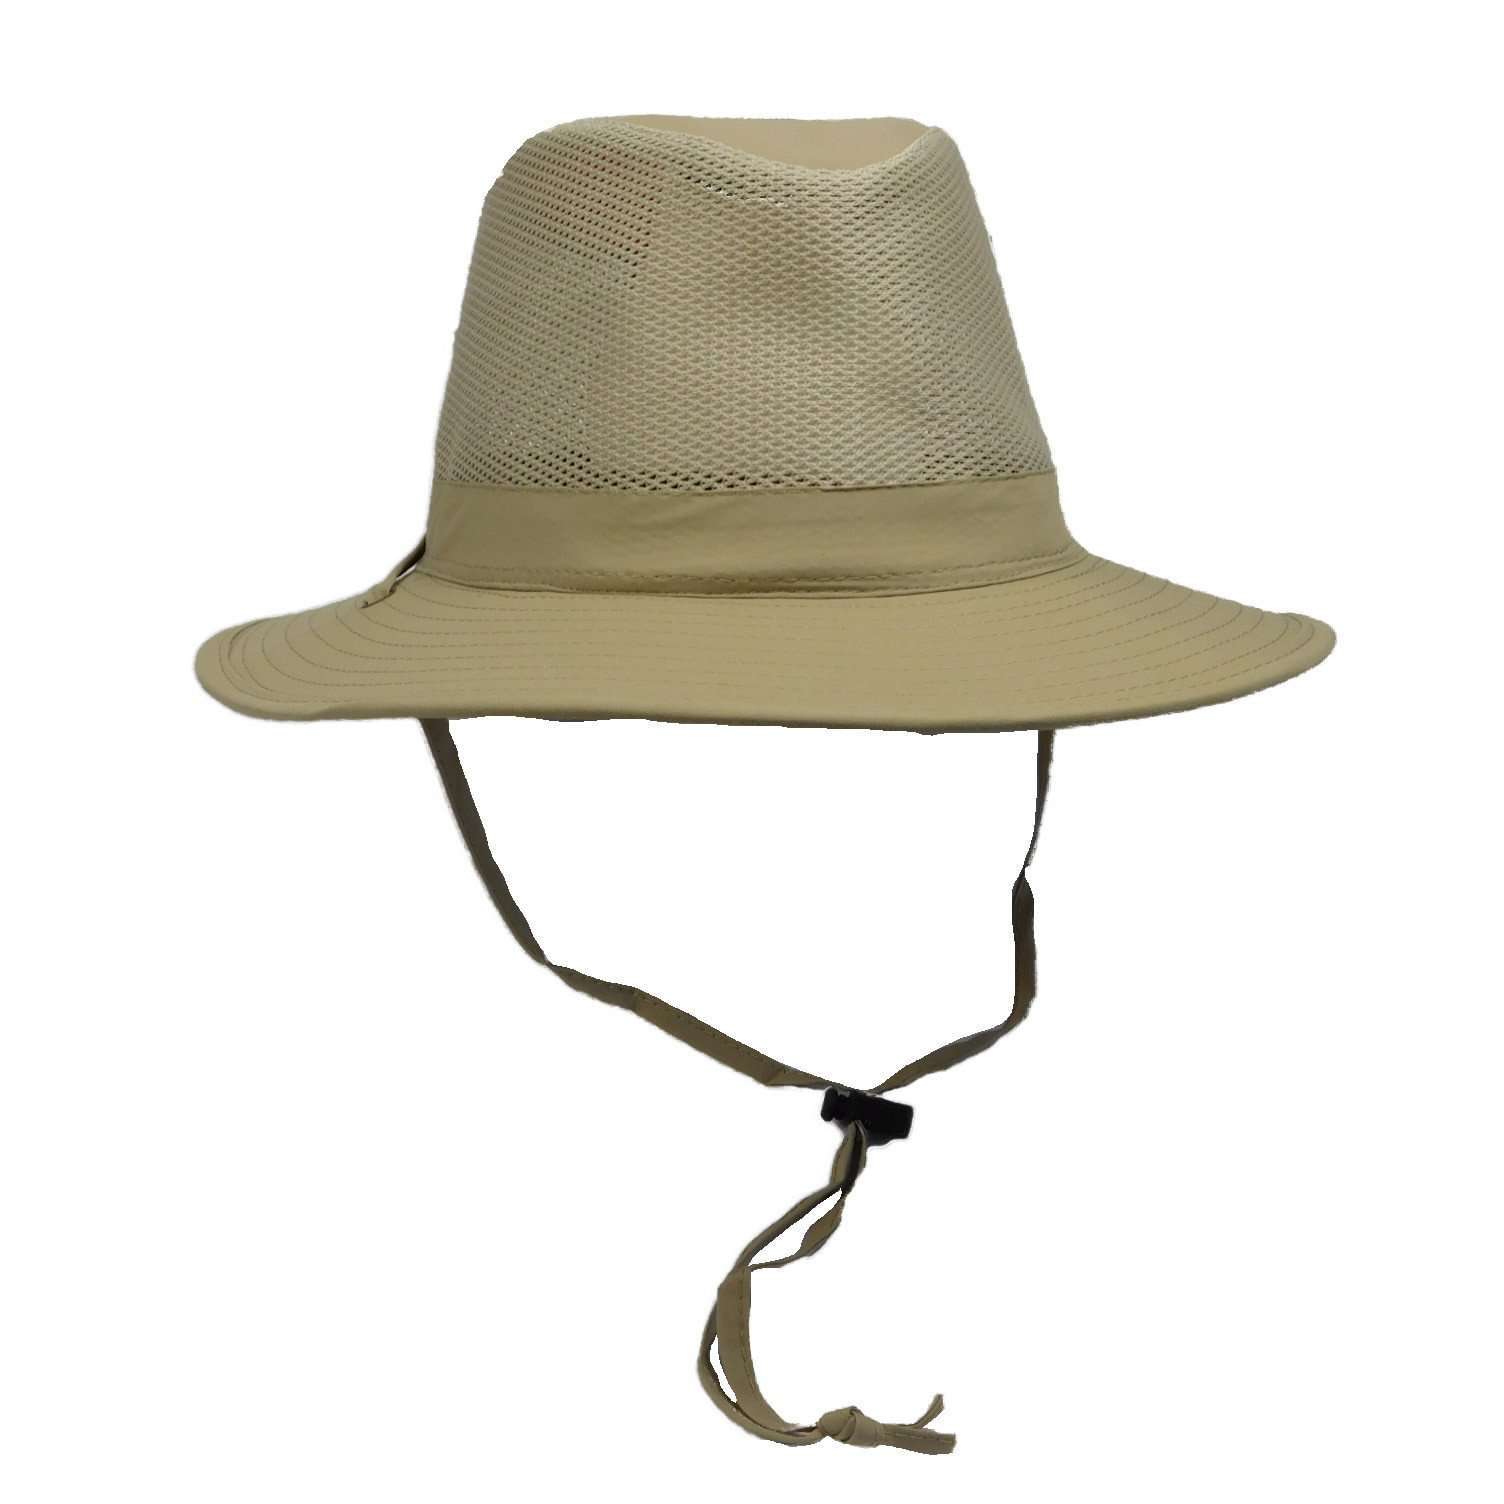 8cb3bc8f324 Stetson No Fly Zone Men s Safar -Insect Repelling Hiking